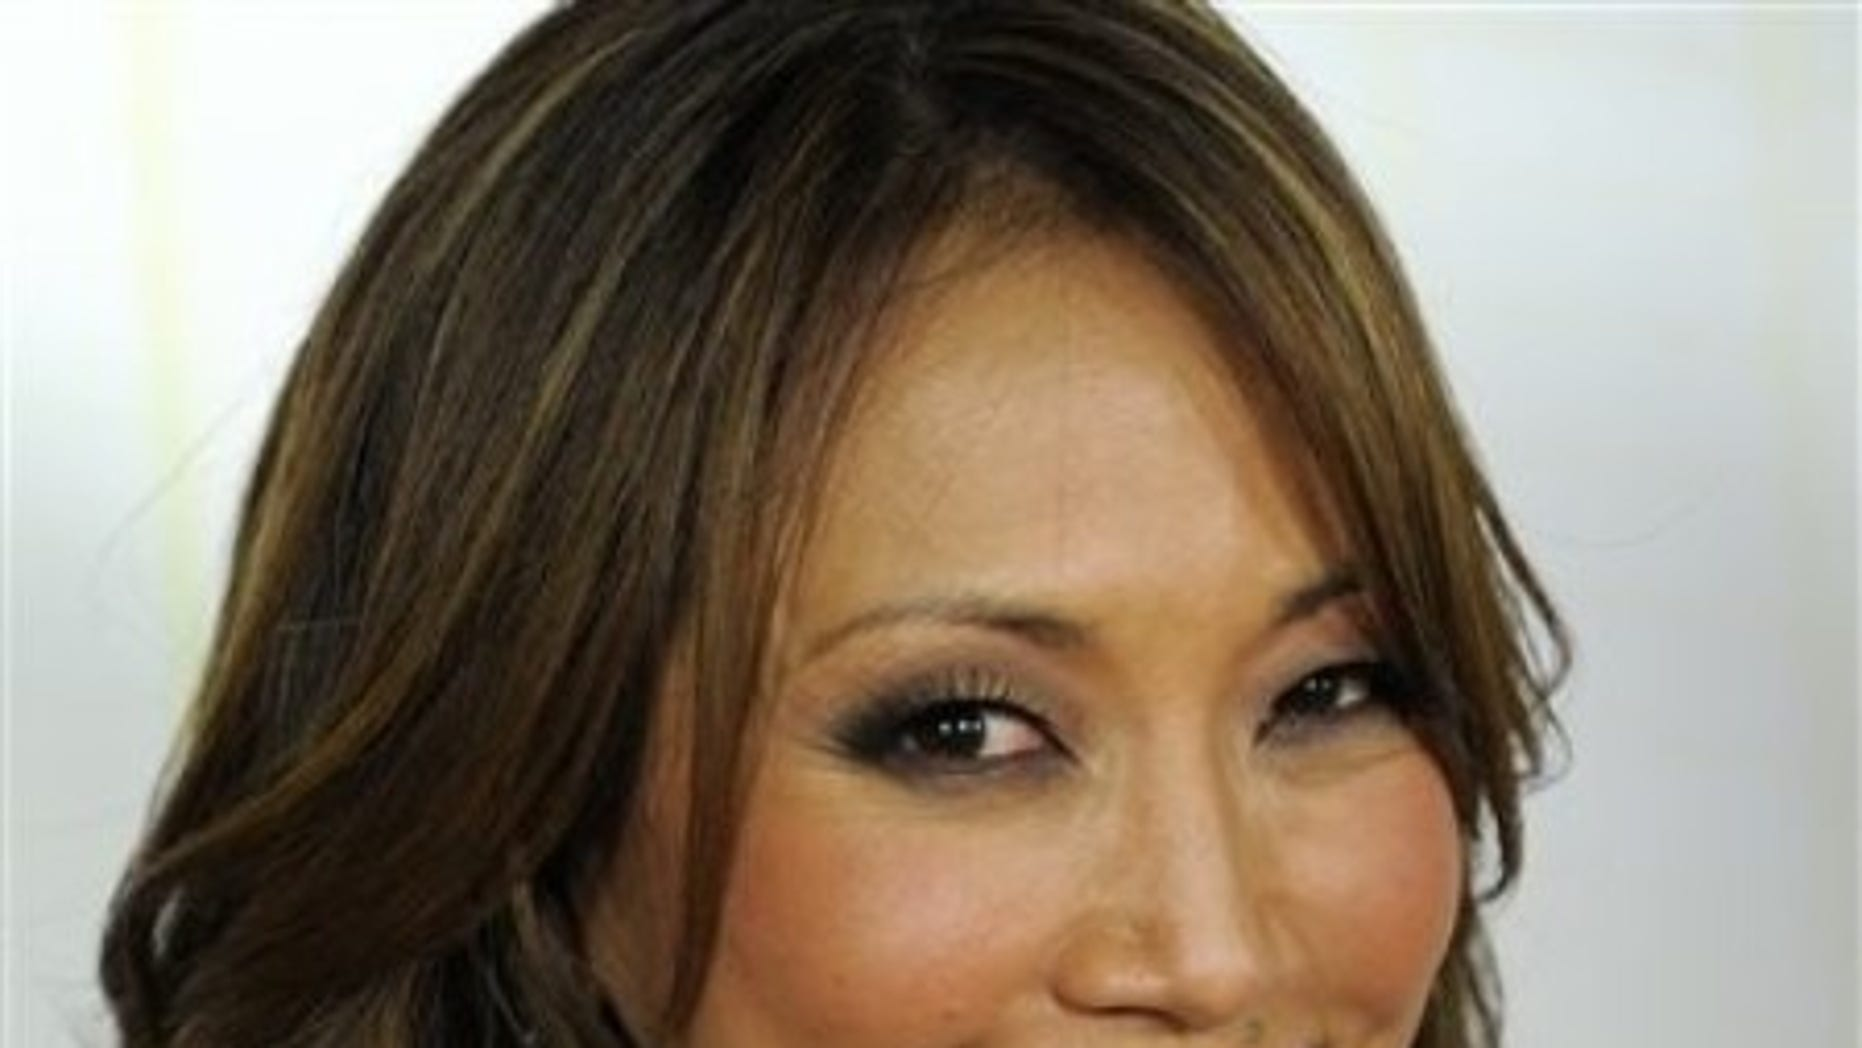 """FILE - In this Sept. 20, 2010 file photo, Carrie Ann Inaba poses at the 11th season premiere of """"Dancing with the Stars."""" (AP Photo/Chris Pizzello, file)"""